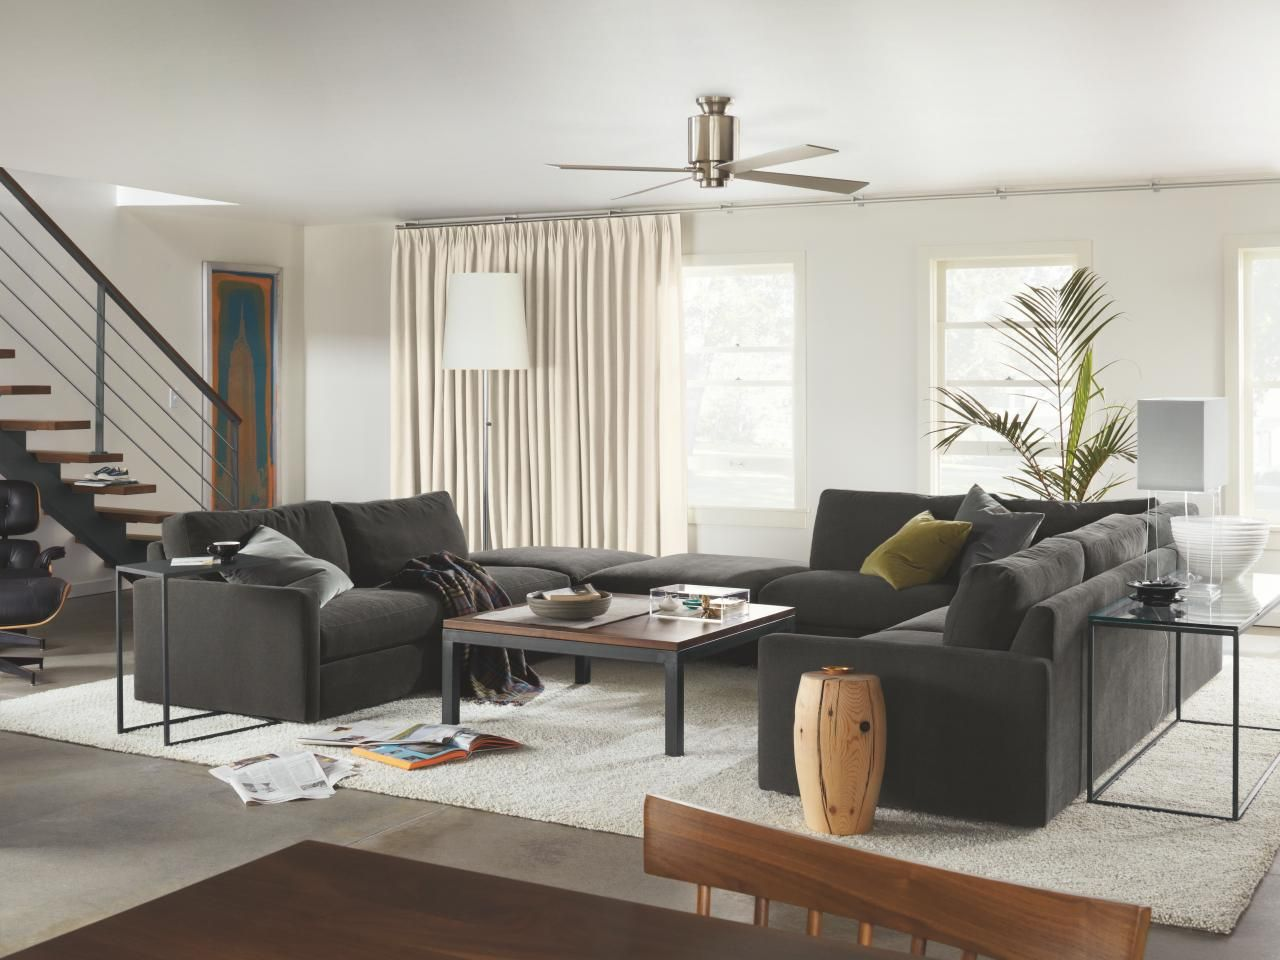 Charmant How Should You Arrange Your Living Room? Here Are Some Ideas Based On Your  Hobbies